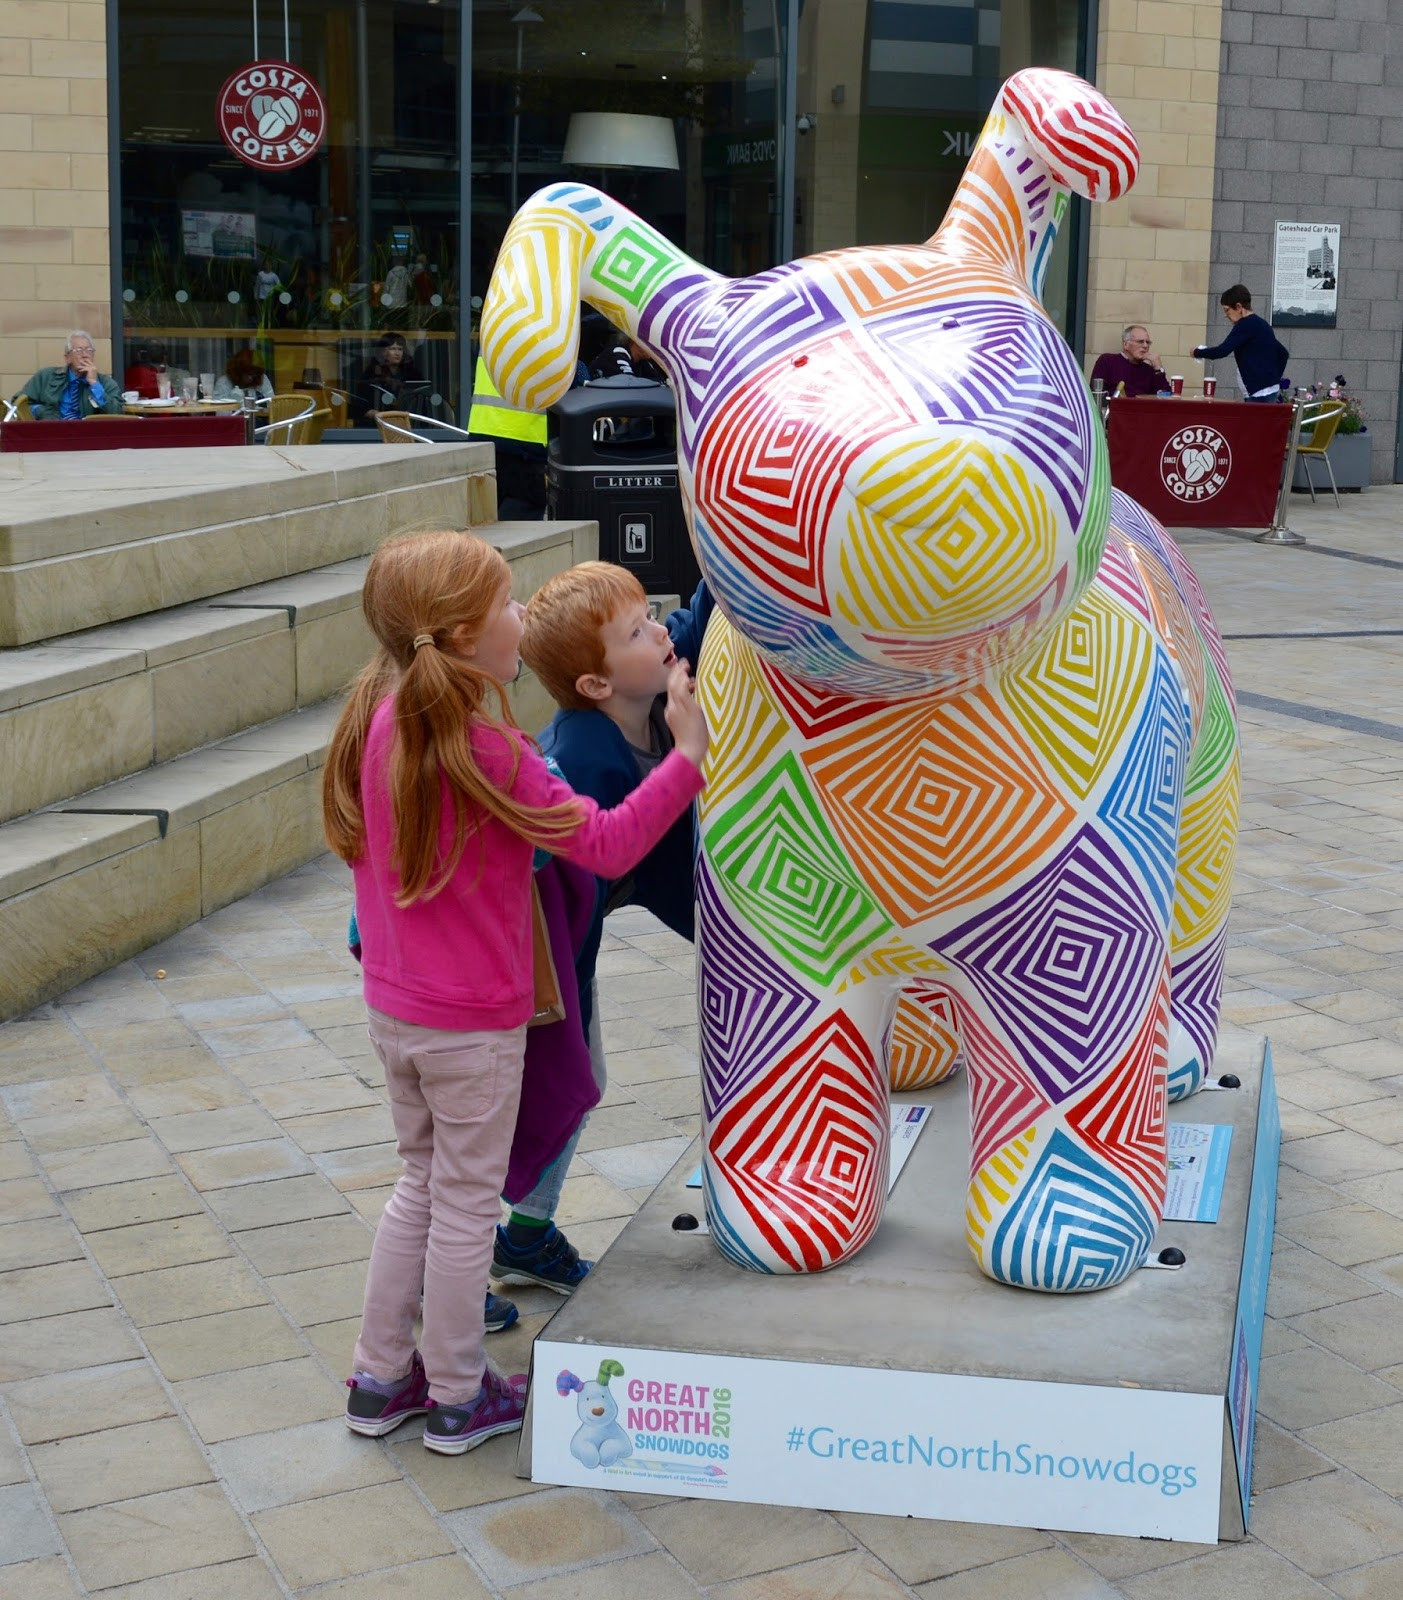 Explore the Great North Snowdogs with Tyne & Wear Metro - Squares, Trinty Square, Gateshead